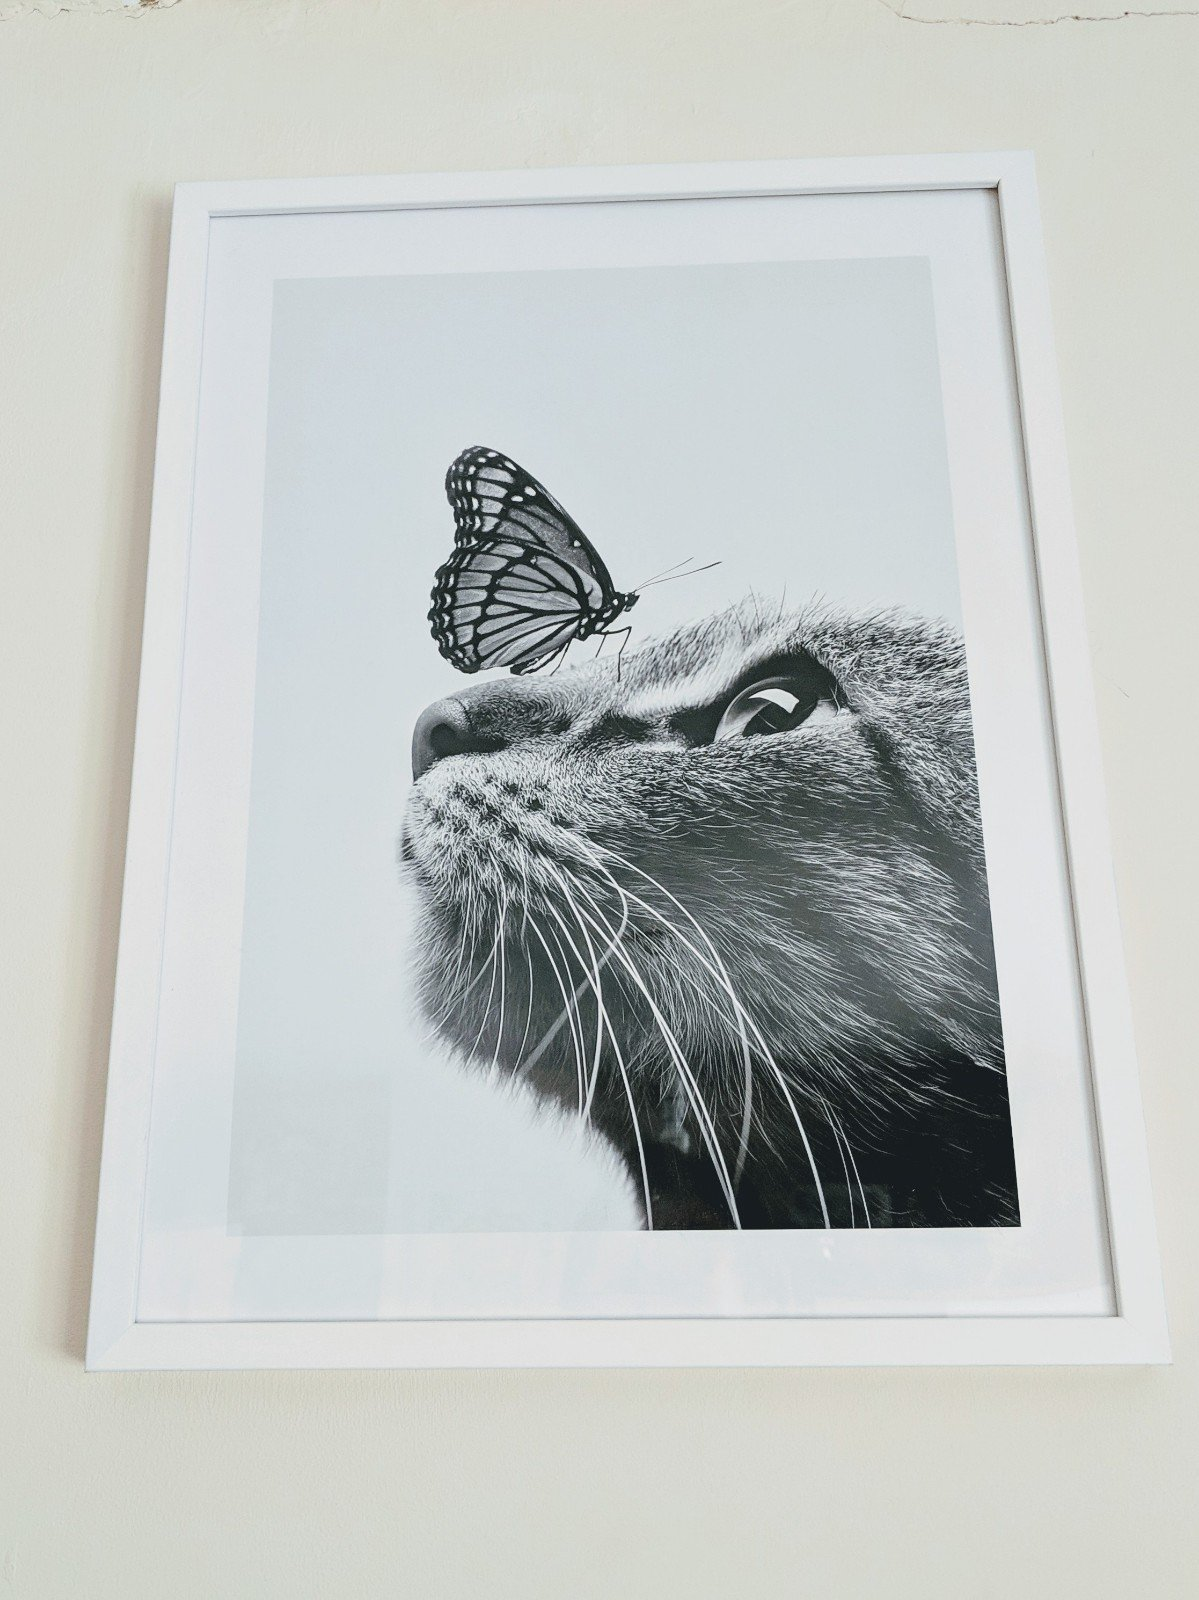 Butterfly Cat framed print from Desenio affordable art, posters, prints and frames